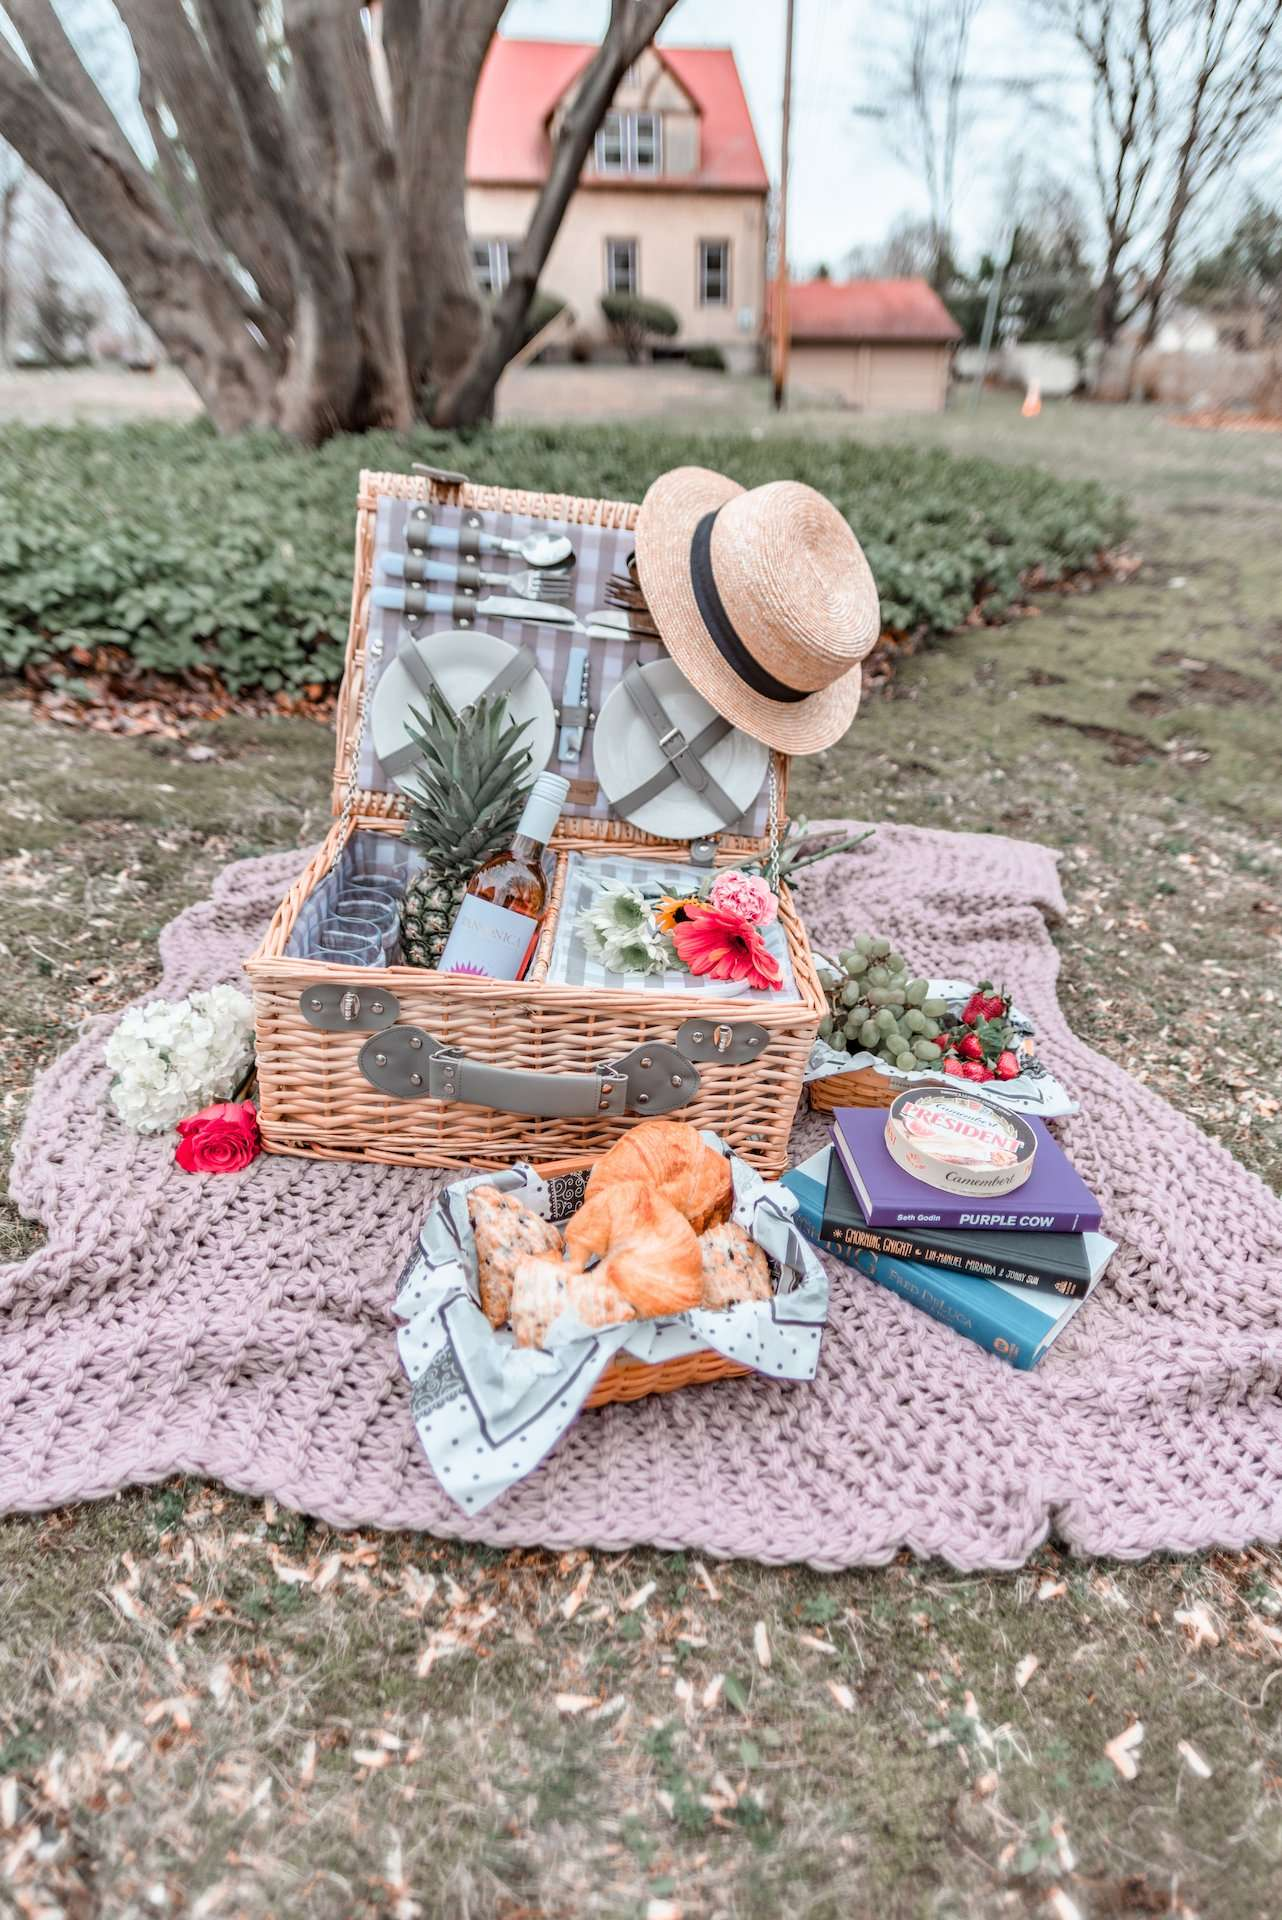 picnic set-up in the yard